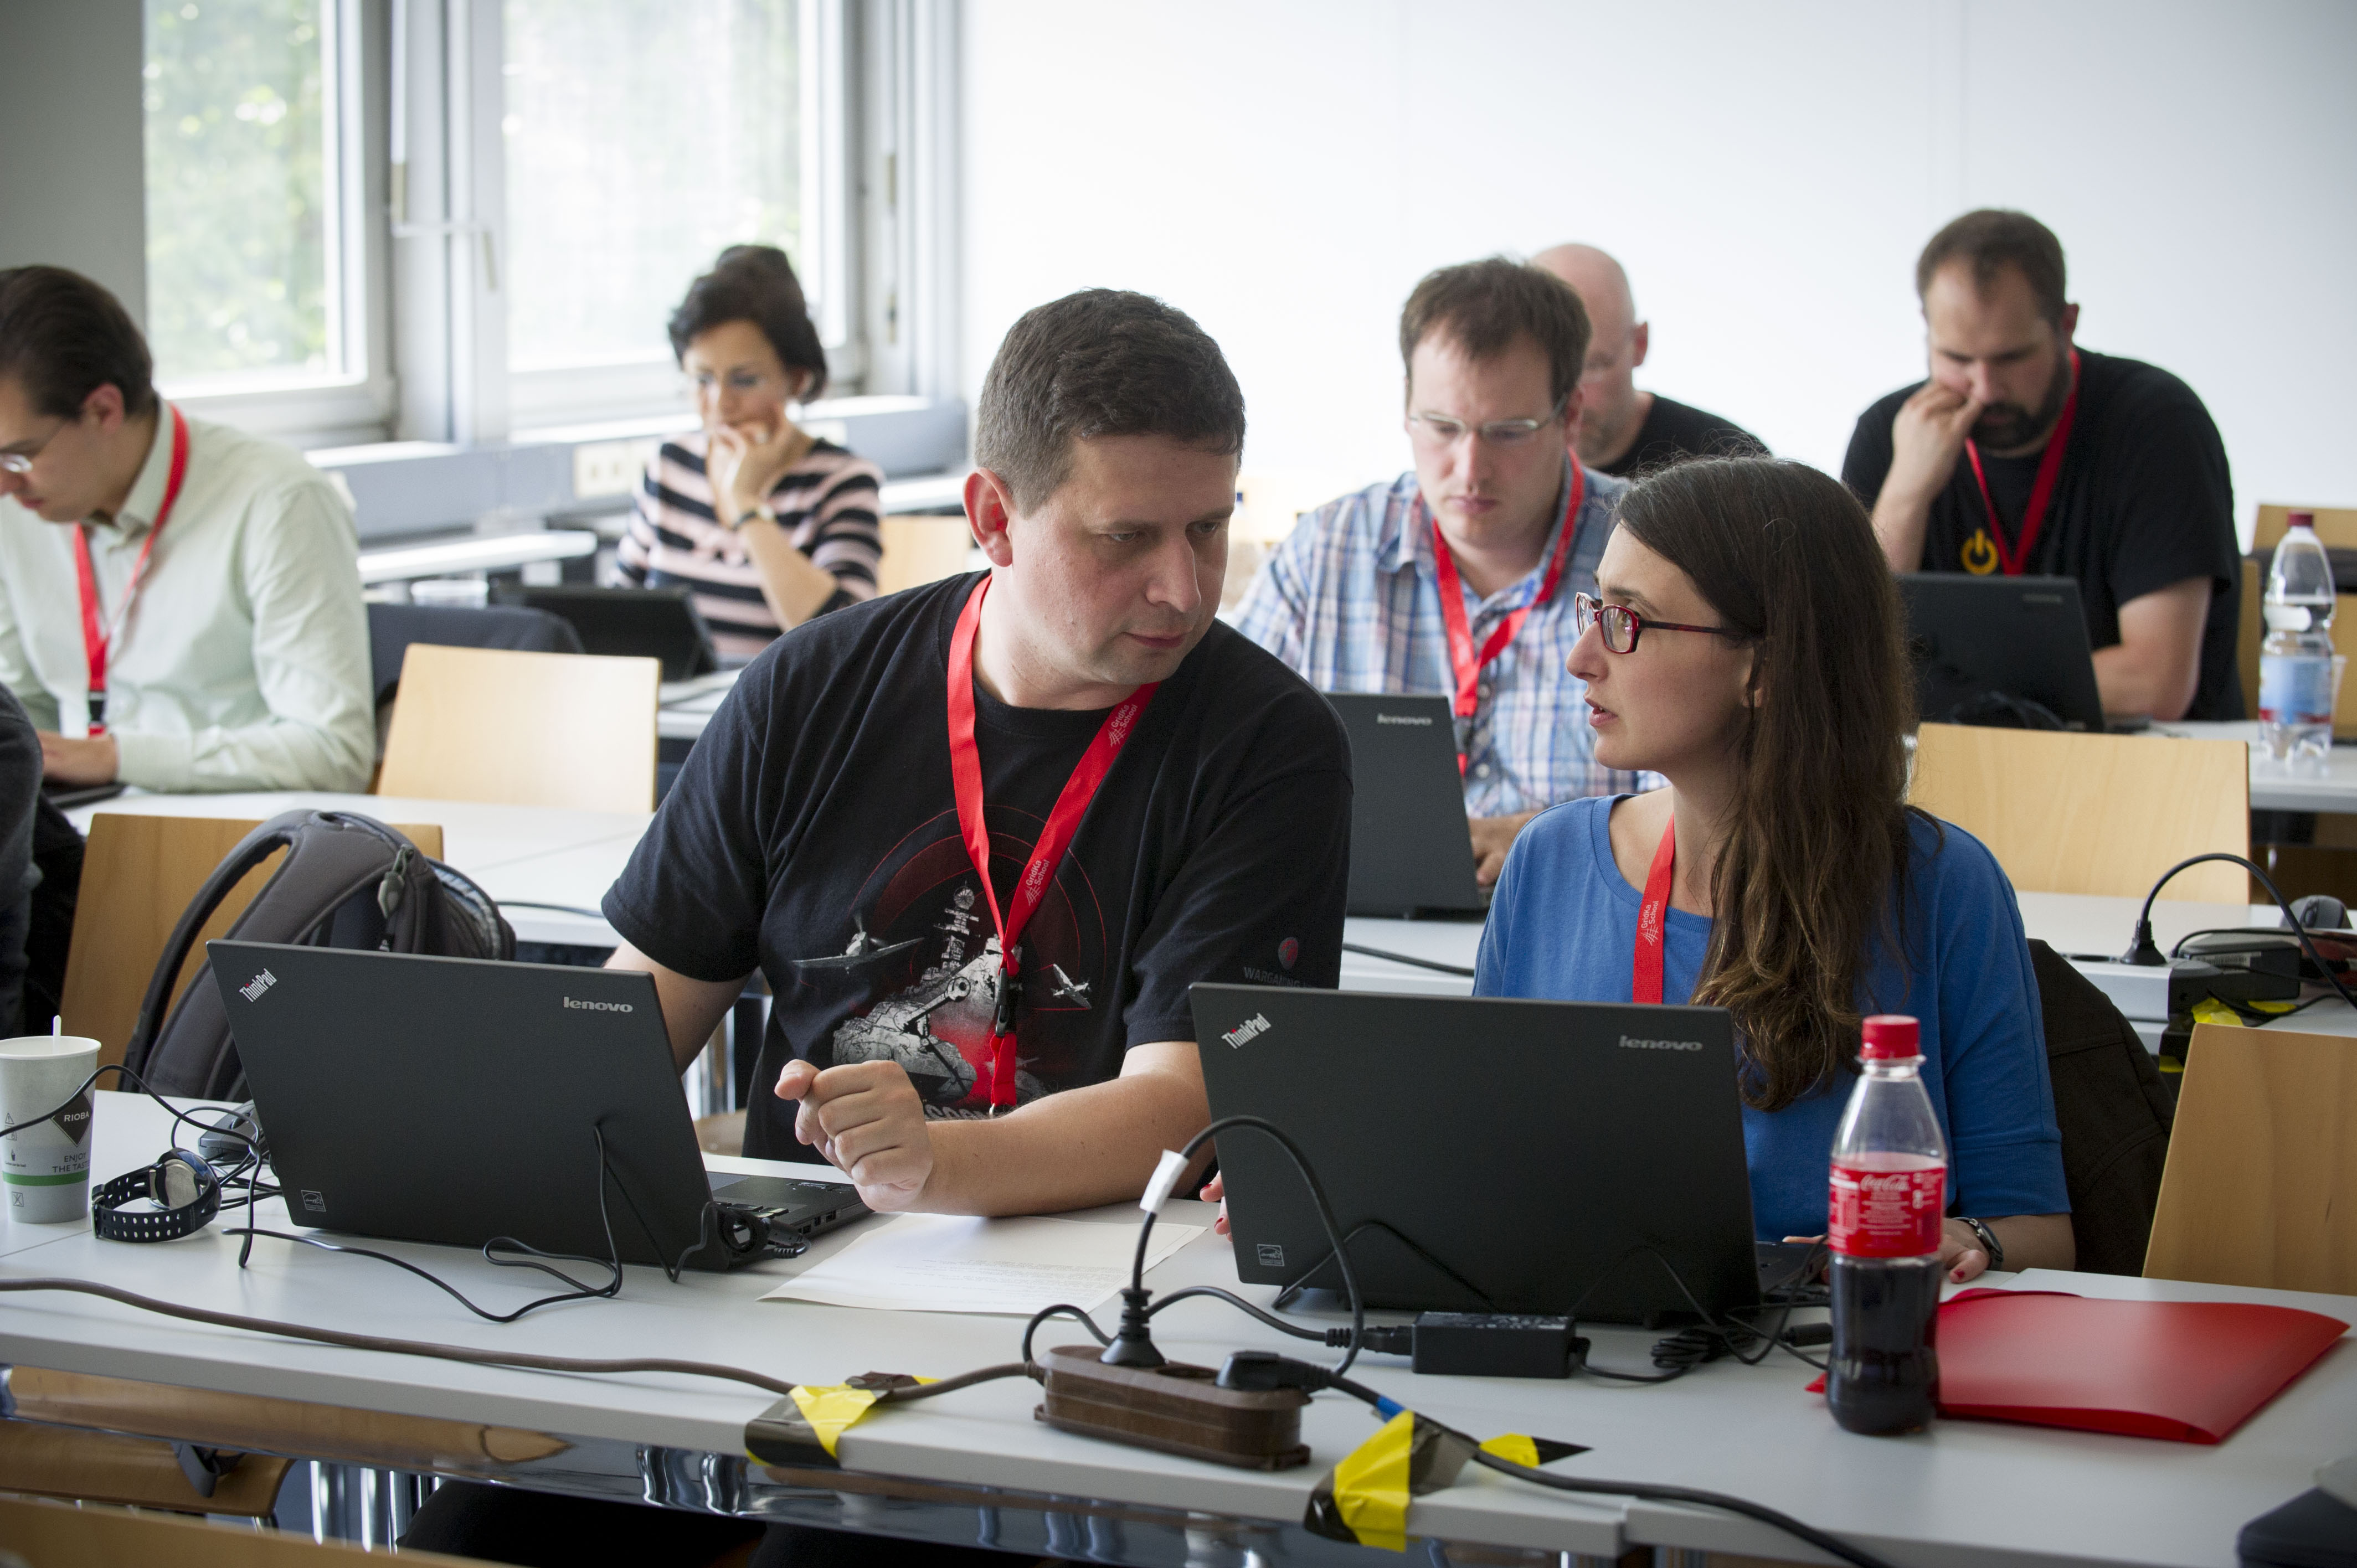 discussing tutorial topics at GridKa School 2015 (photo by Tanja Meissner, KIT)